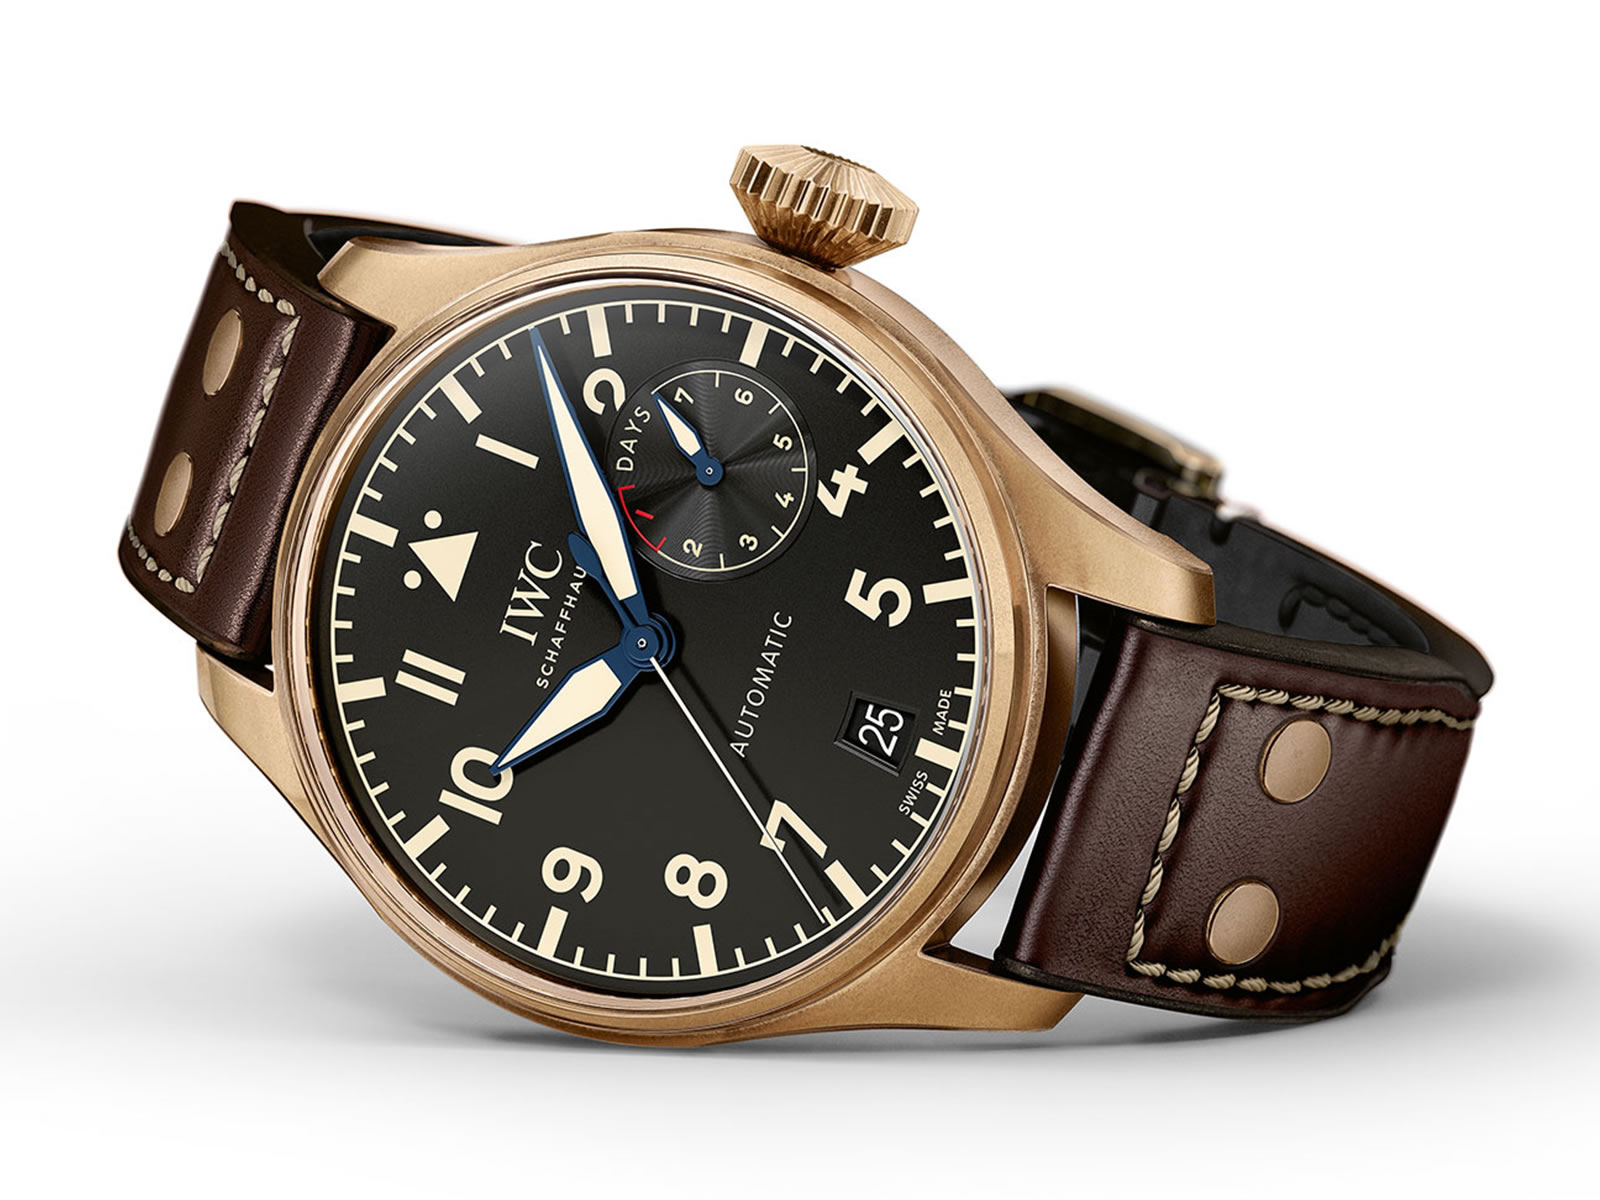 iw501005-iwc-big-pilots-watch-heritage-bronze-1-.jpg